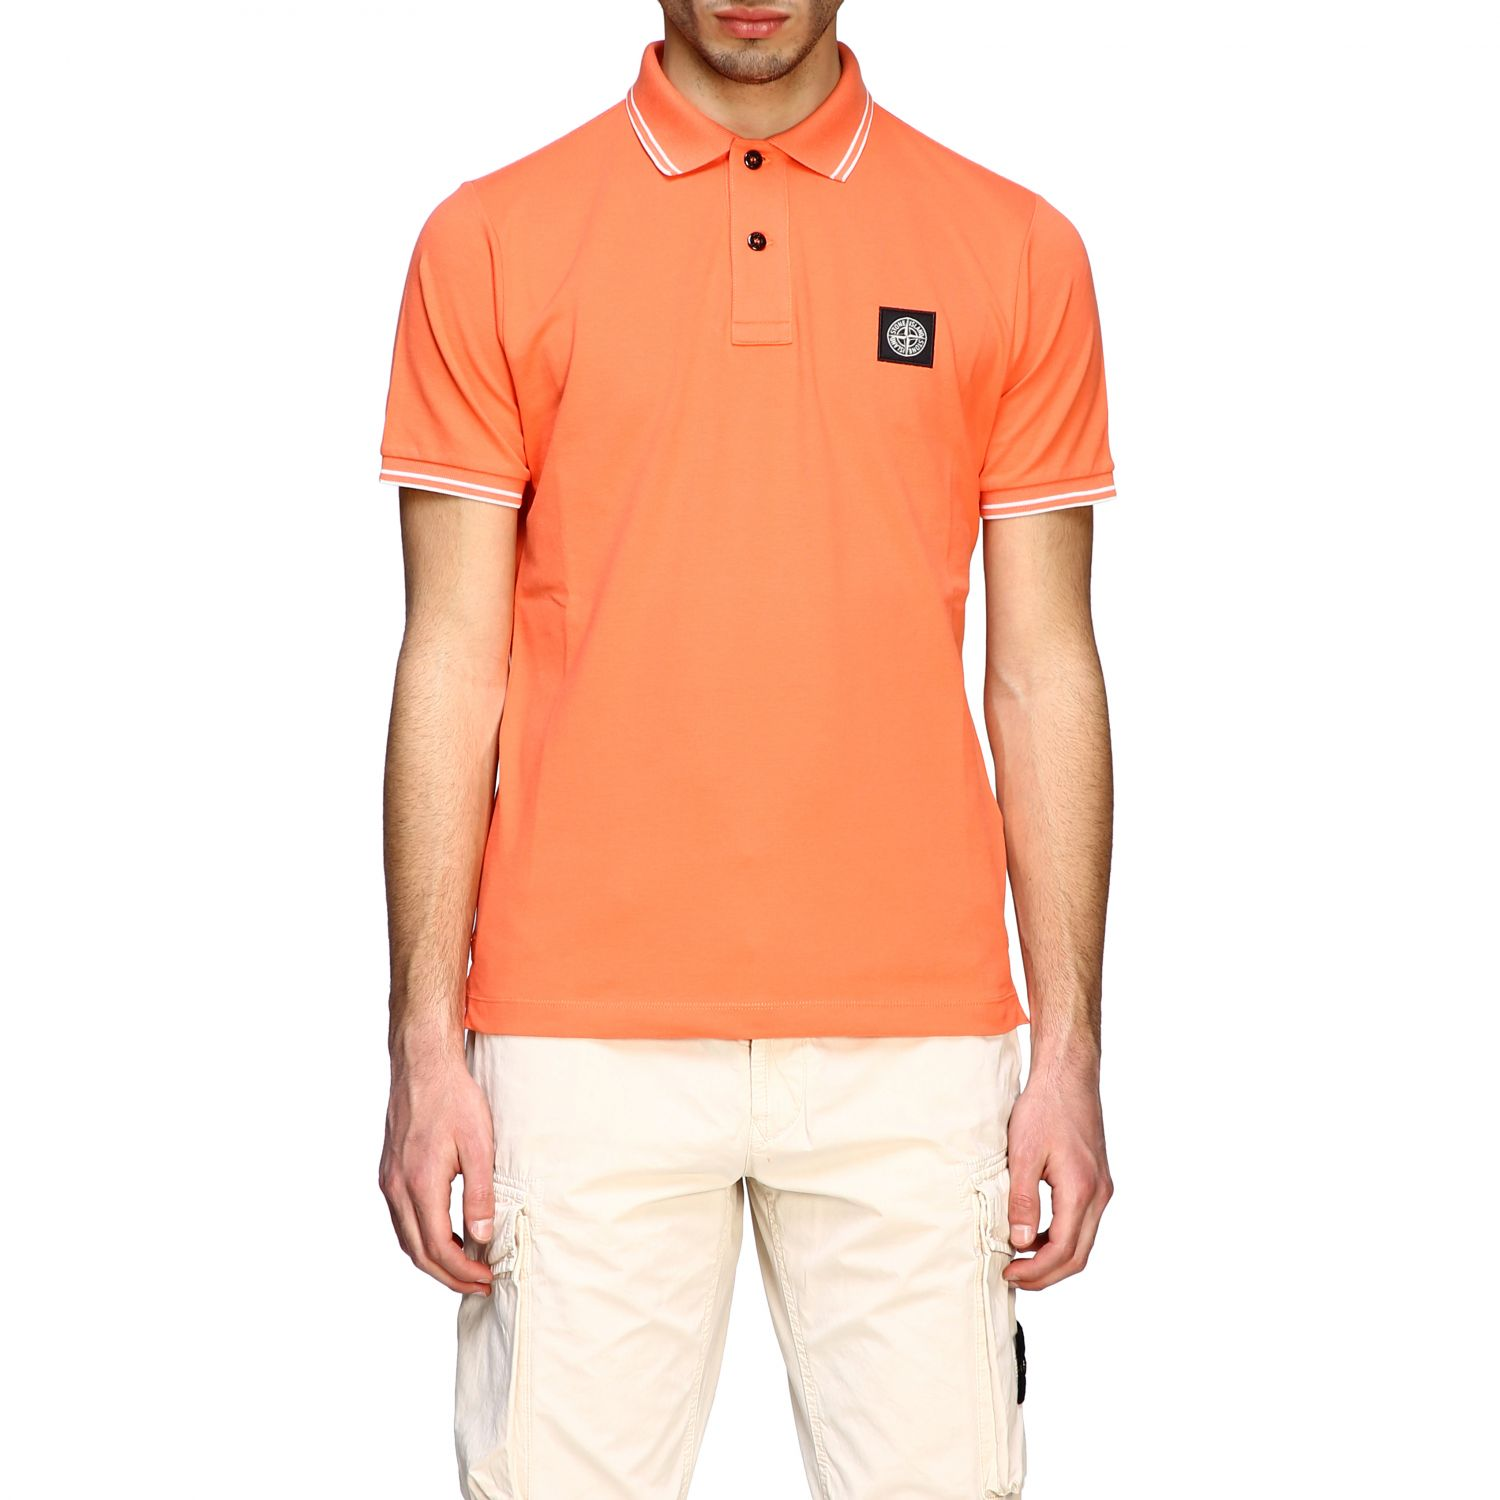 T-shirt men Stone Island orange 1